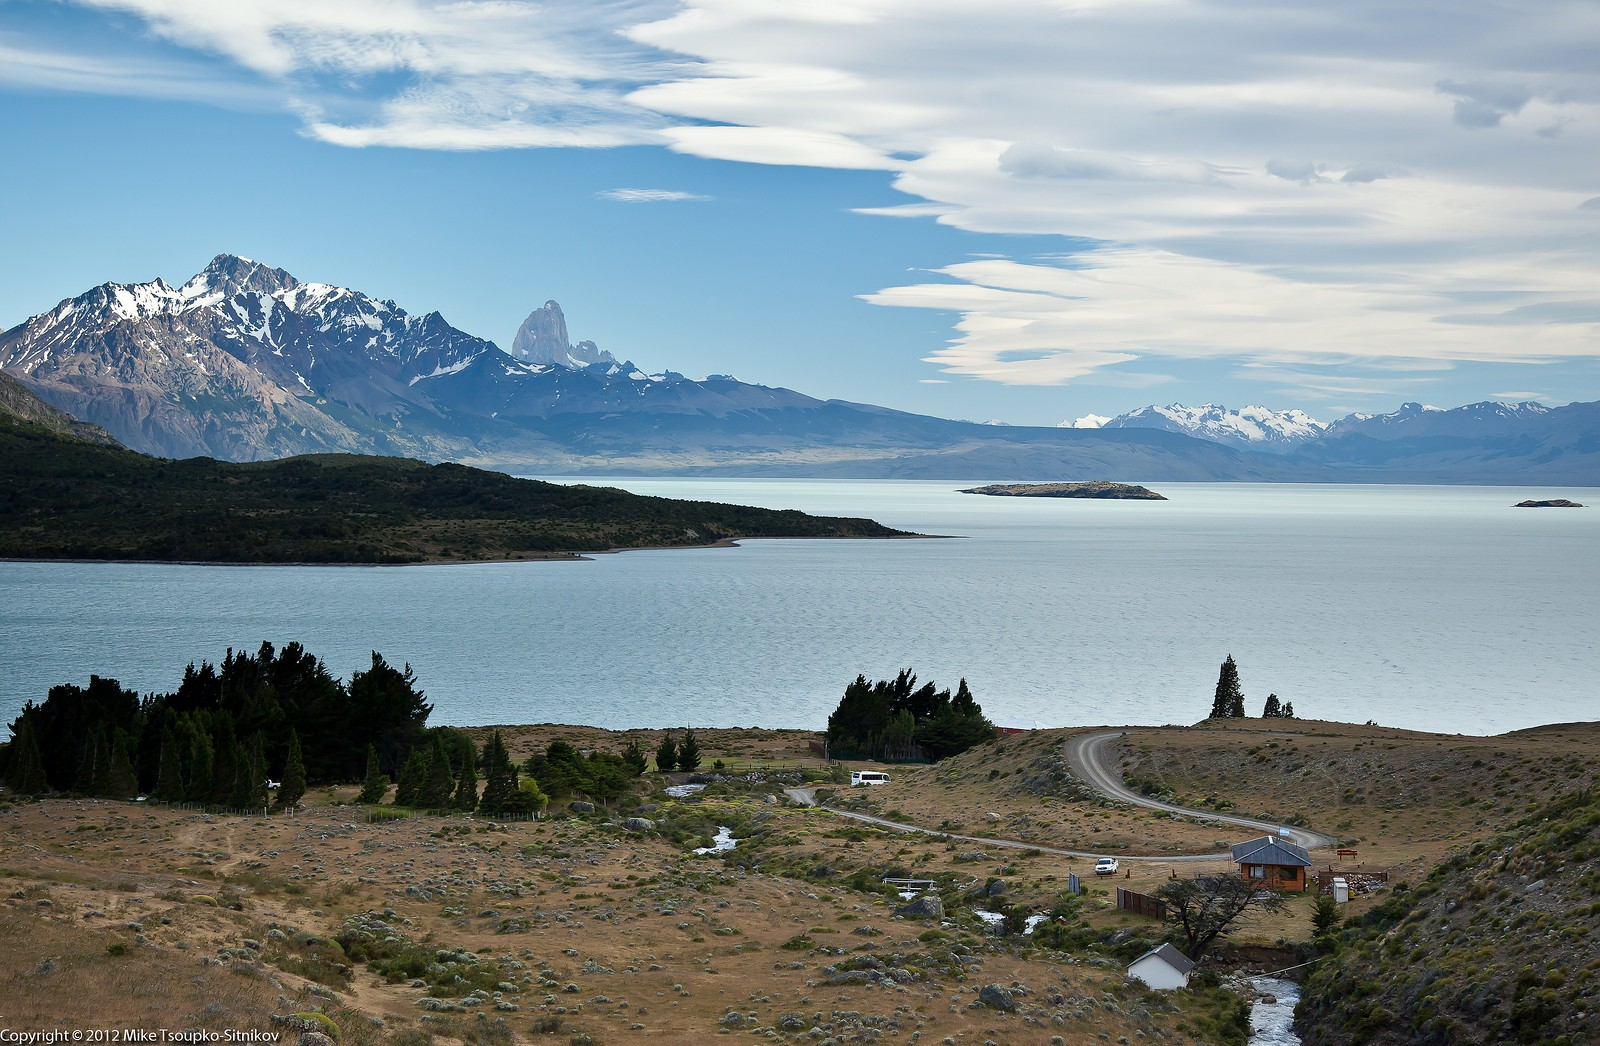 Lake Viedma and Mount Fitz Roy - a view from Laguna Azul trail